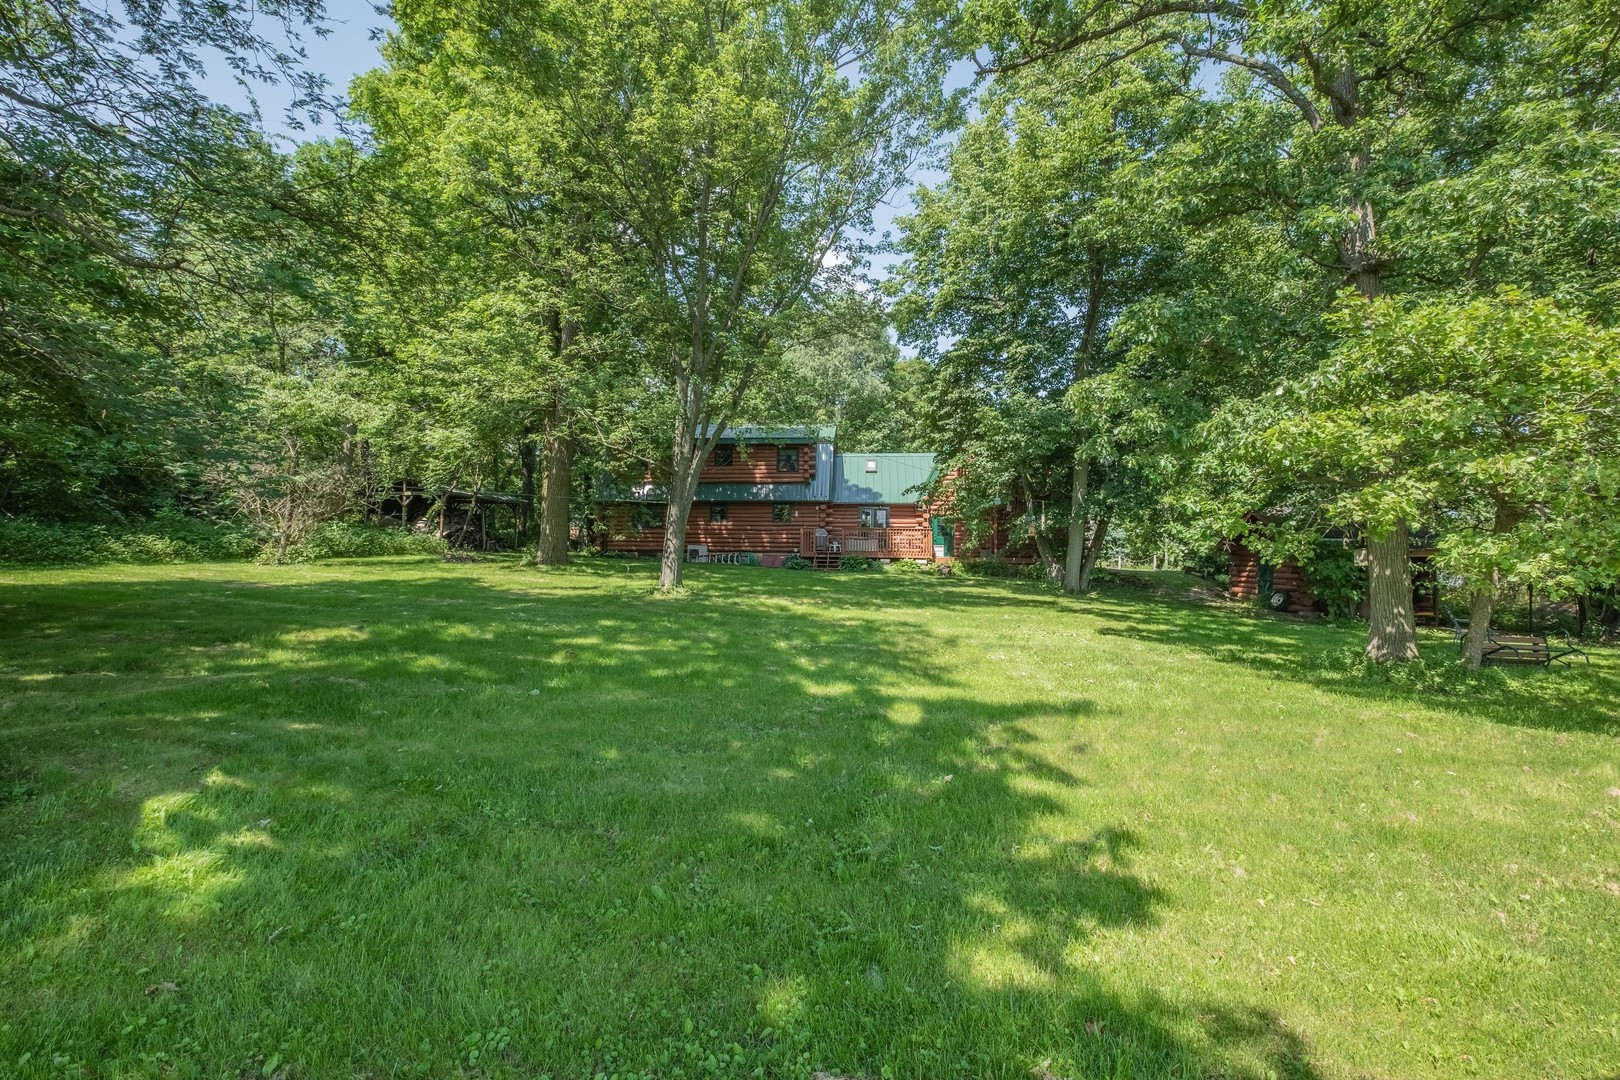 8N231 GRAND ARBOR, Maple Park, Illinois, 60151